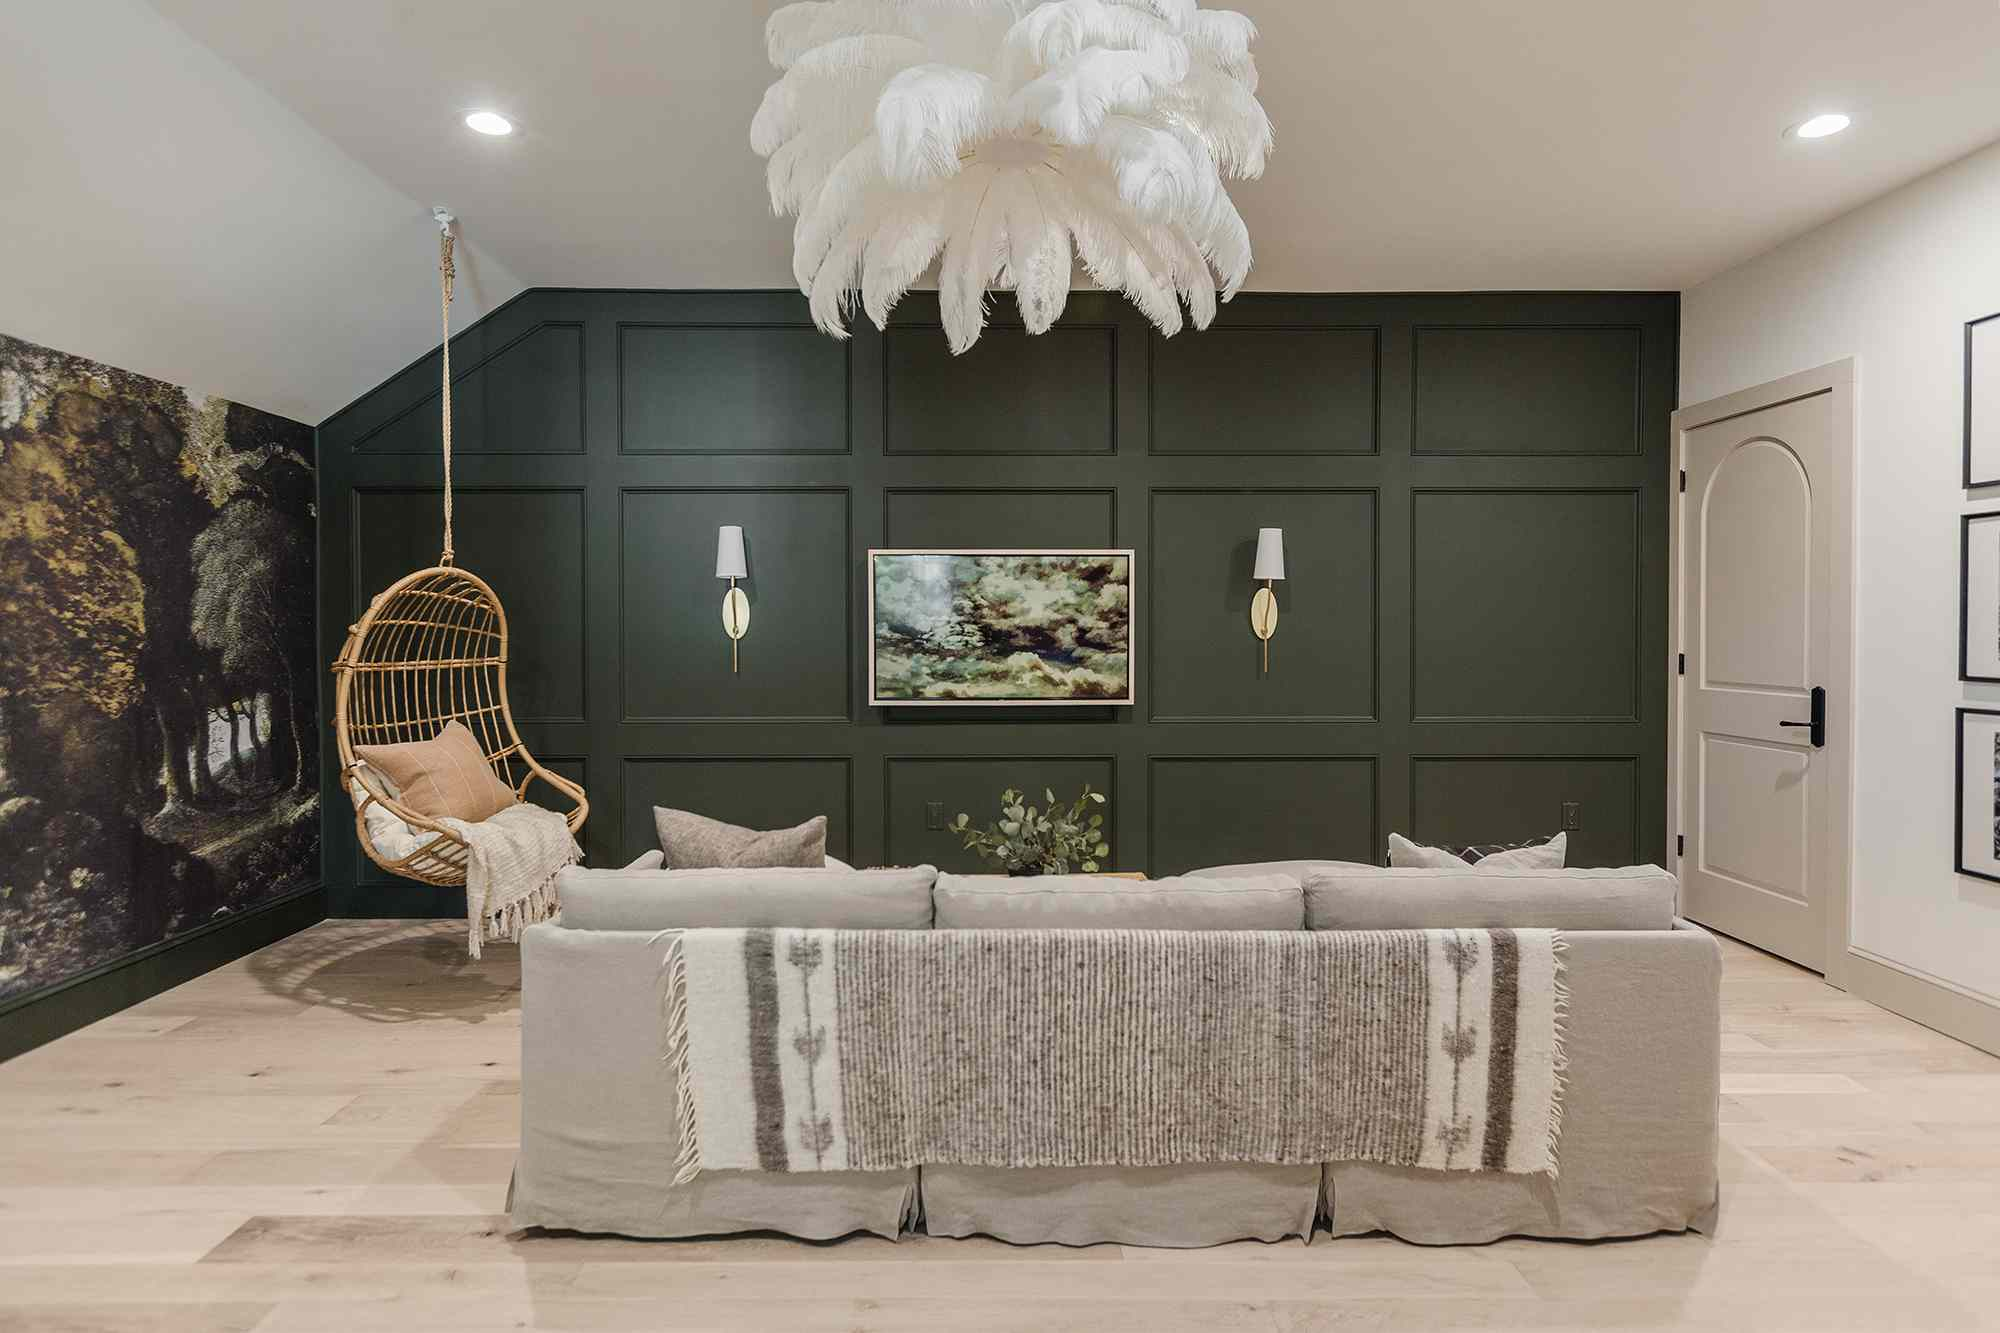 Green coffered wall with hanging rattan chair.